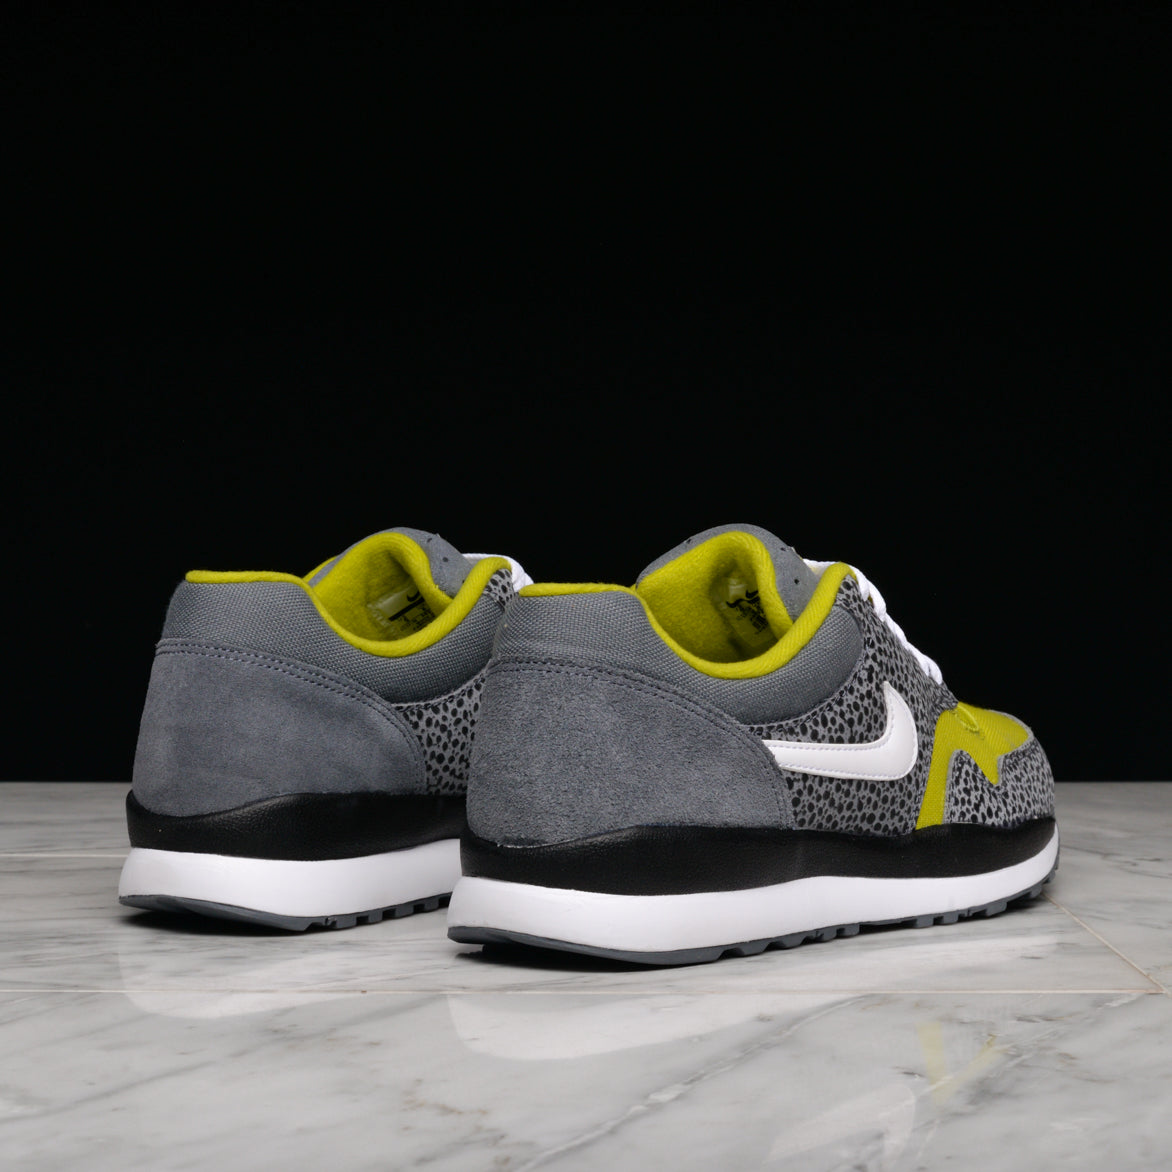 AIR SAFARI SE - FLINT GREY / BRIGHT CACTUS